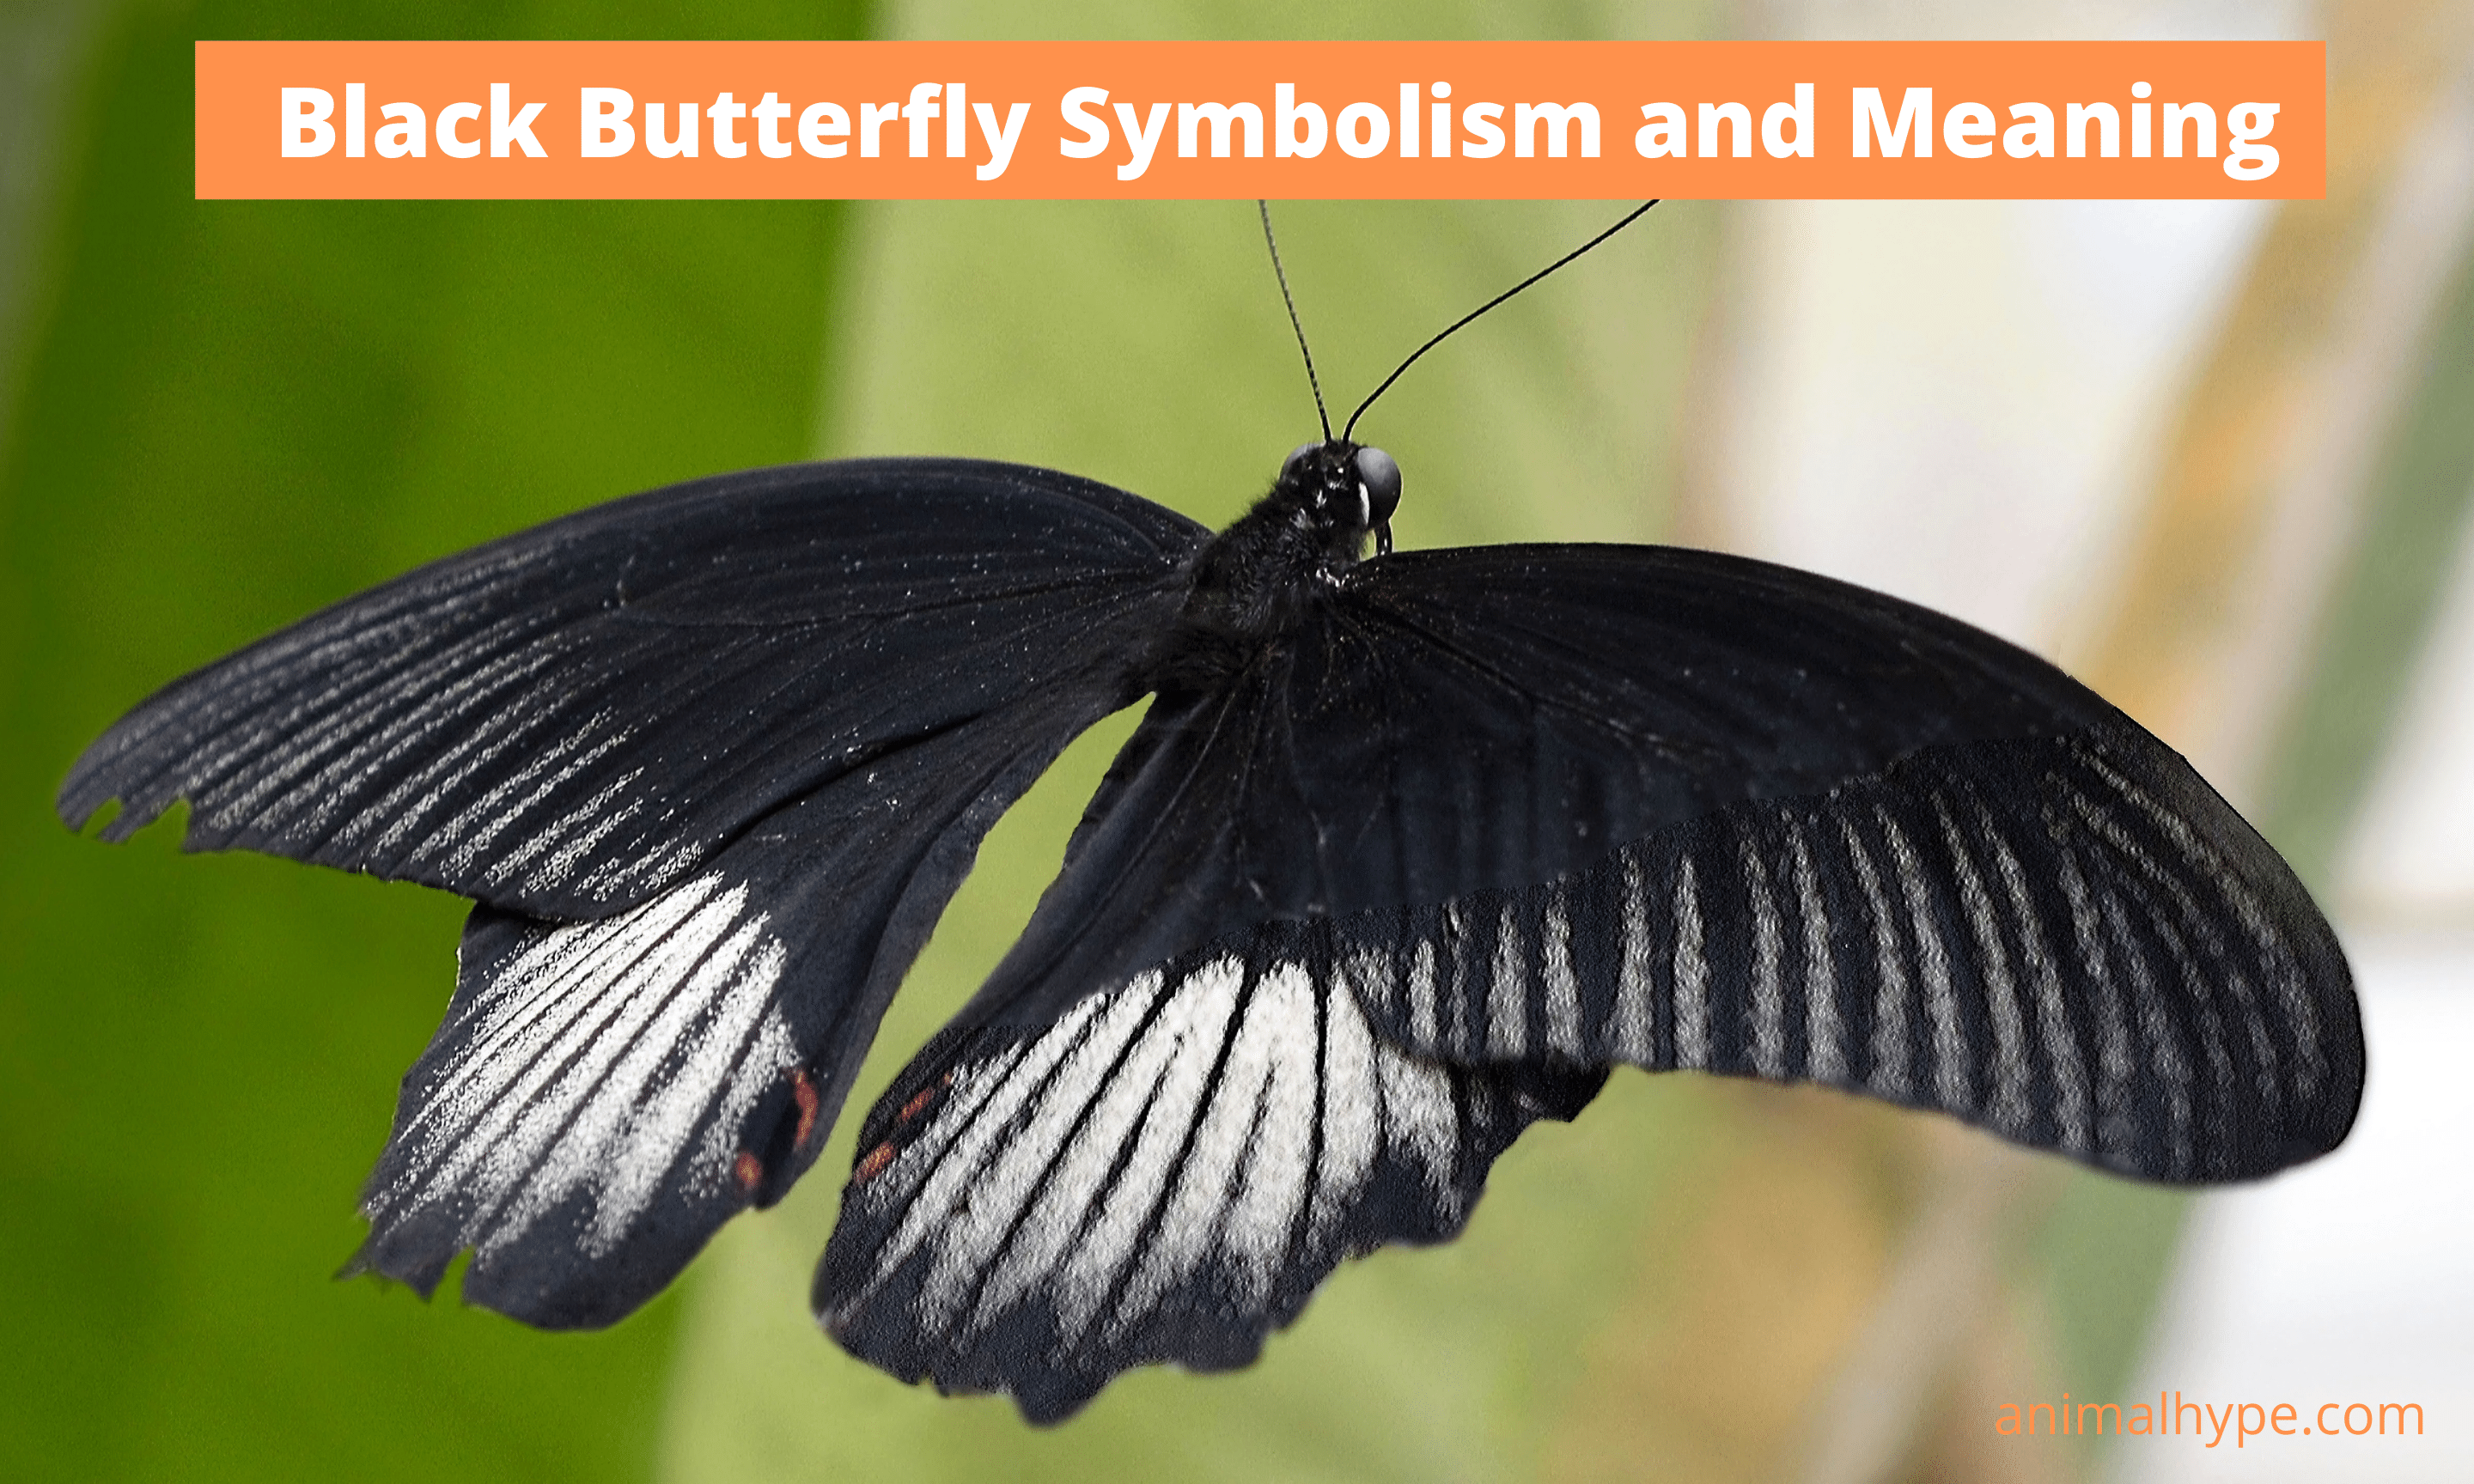 Black Butterfly Symbolism and Meaning